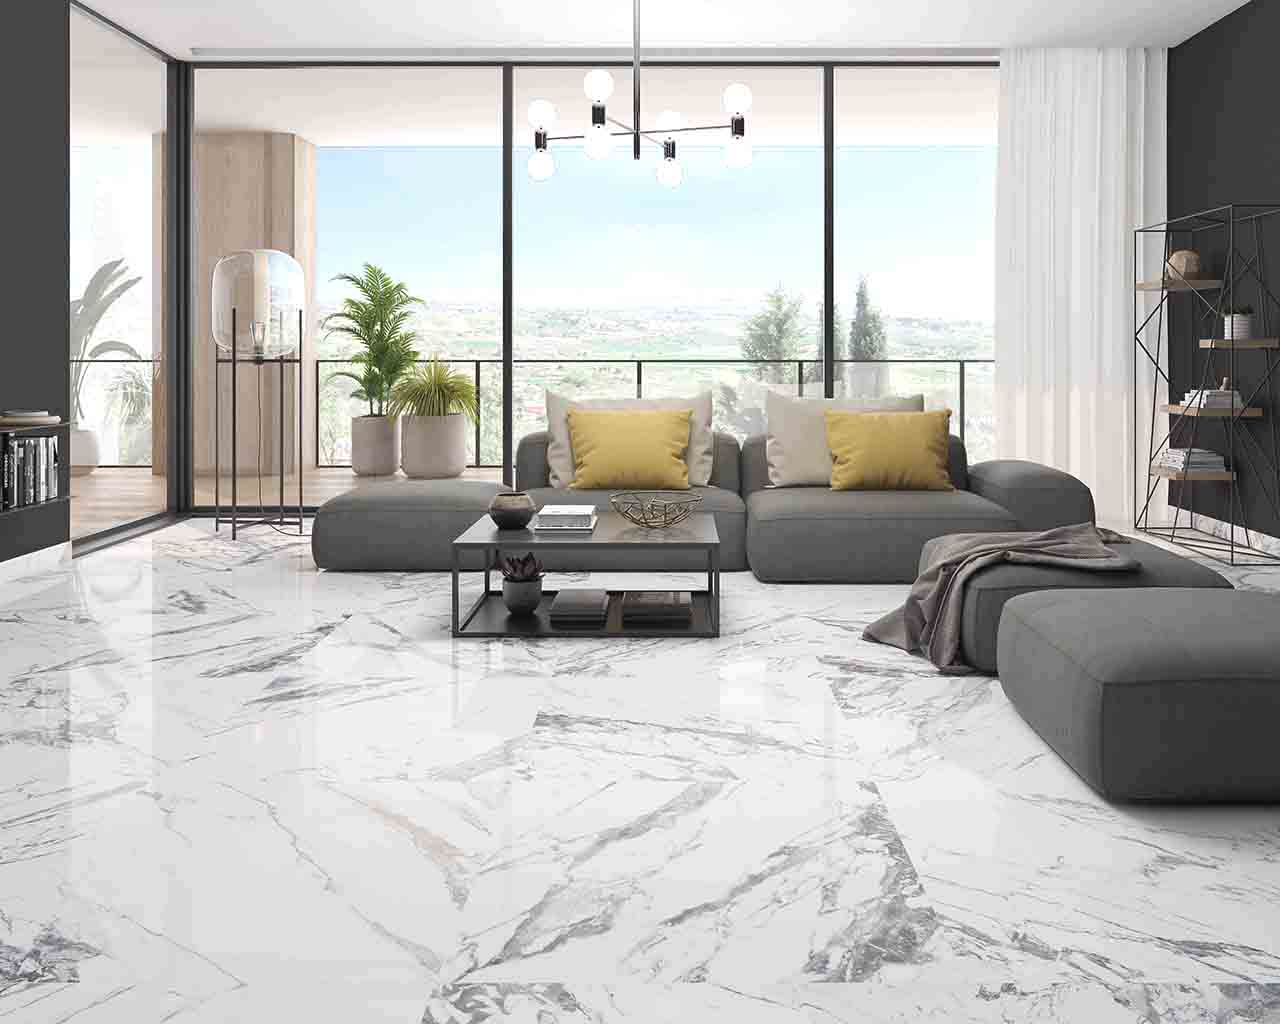 A living room floor with our Tinenza Pulido 24 x 24 Rectified Porcelain Tile